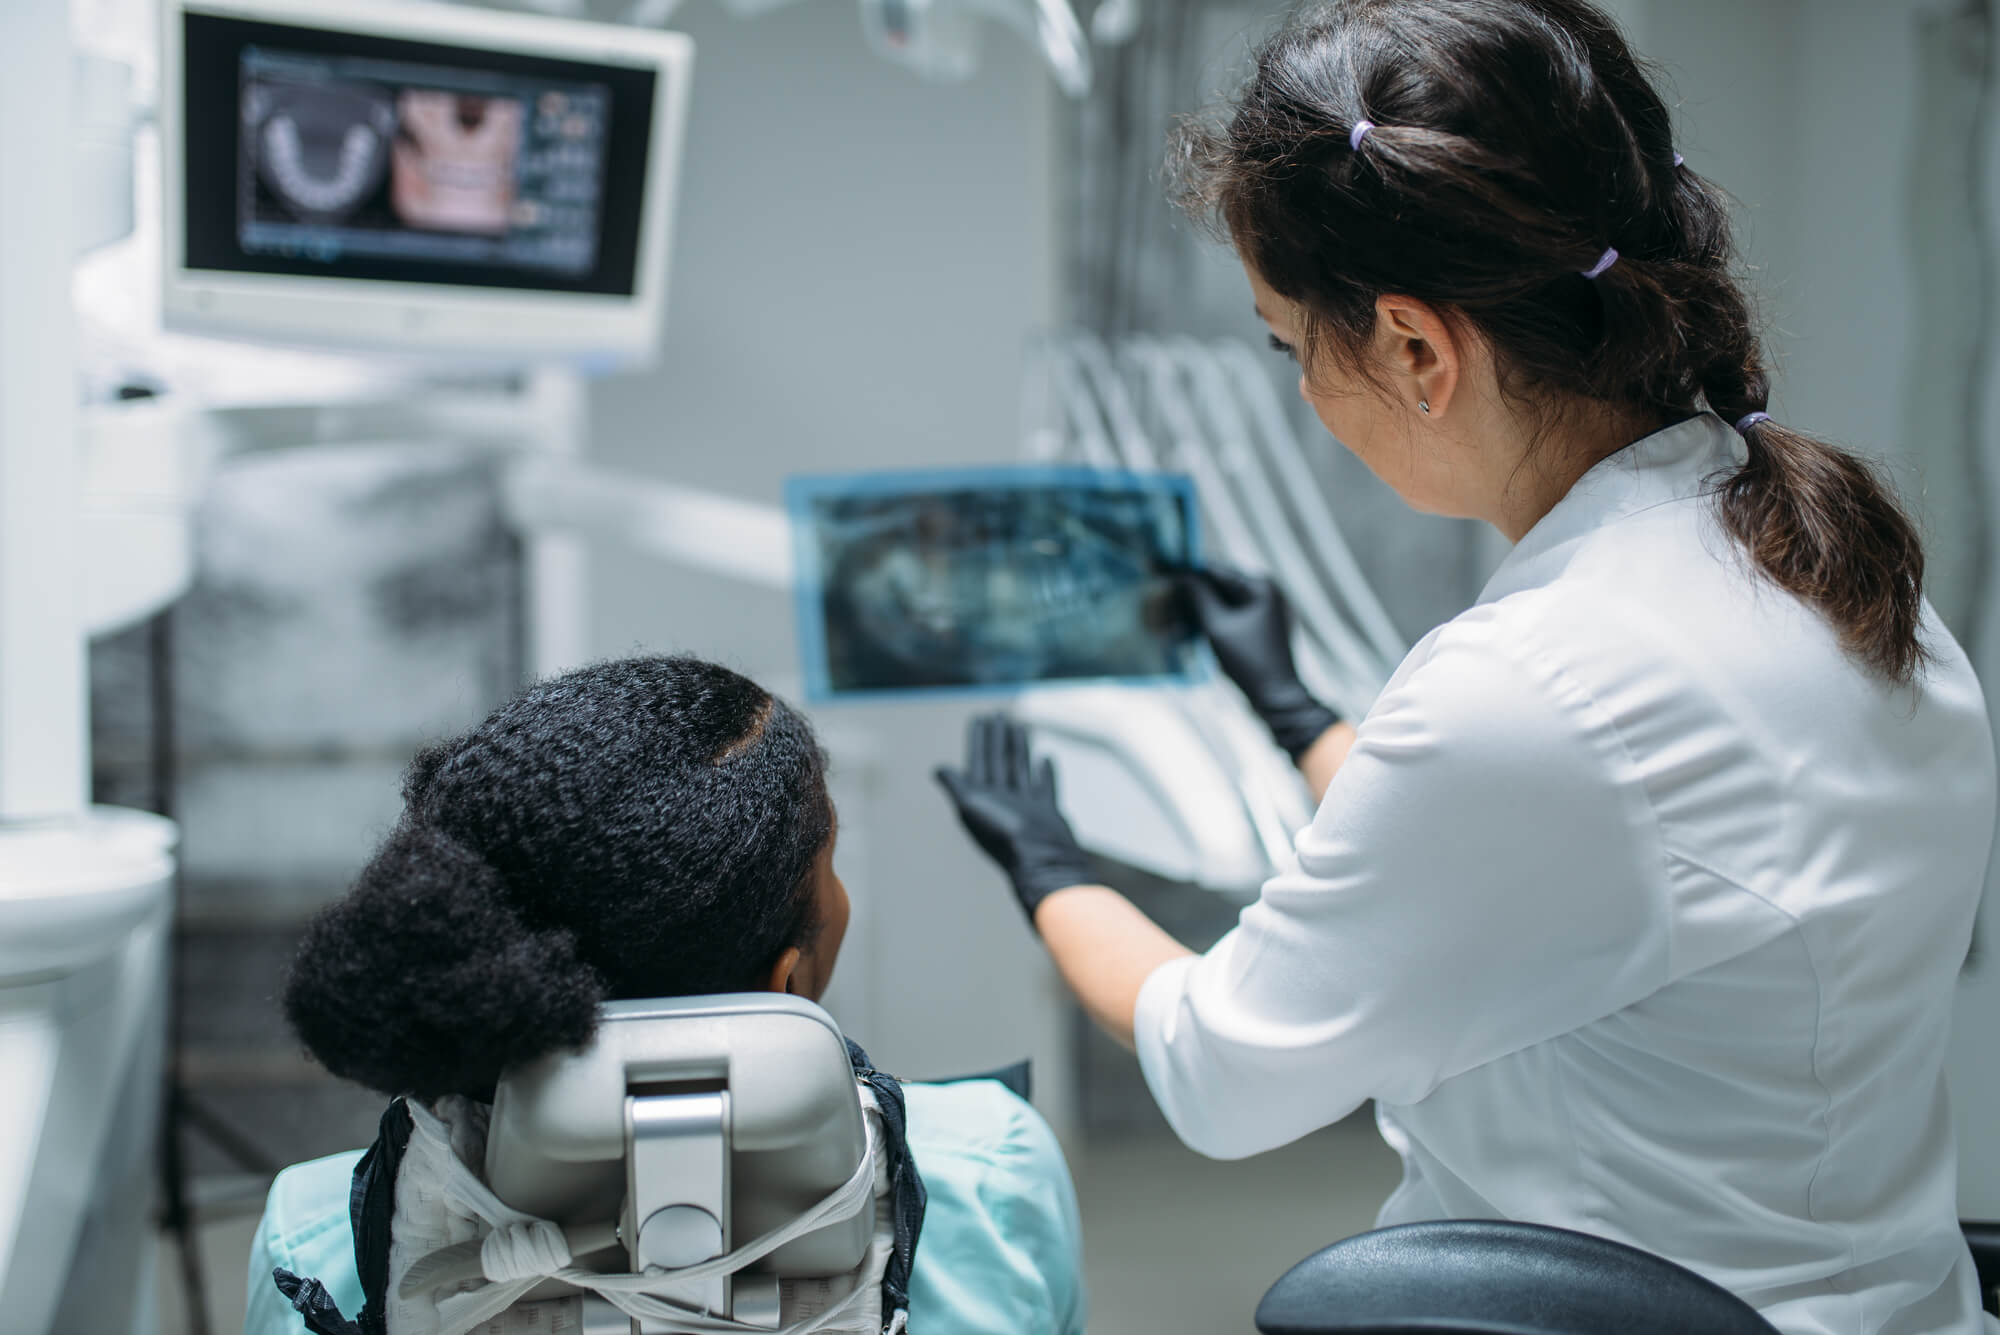 where can i get a dental implant in doral?